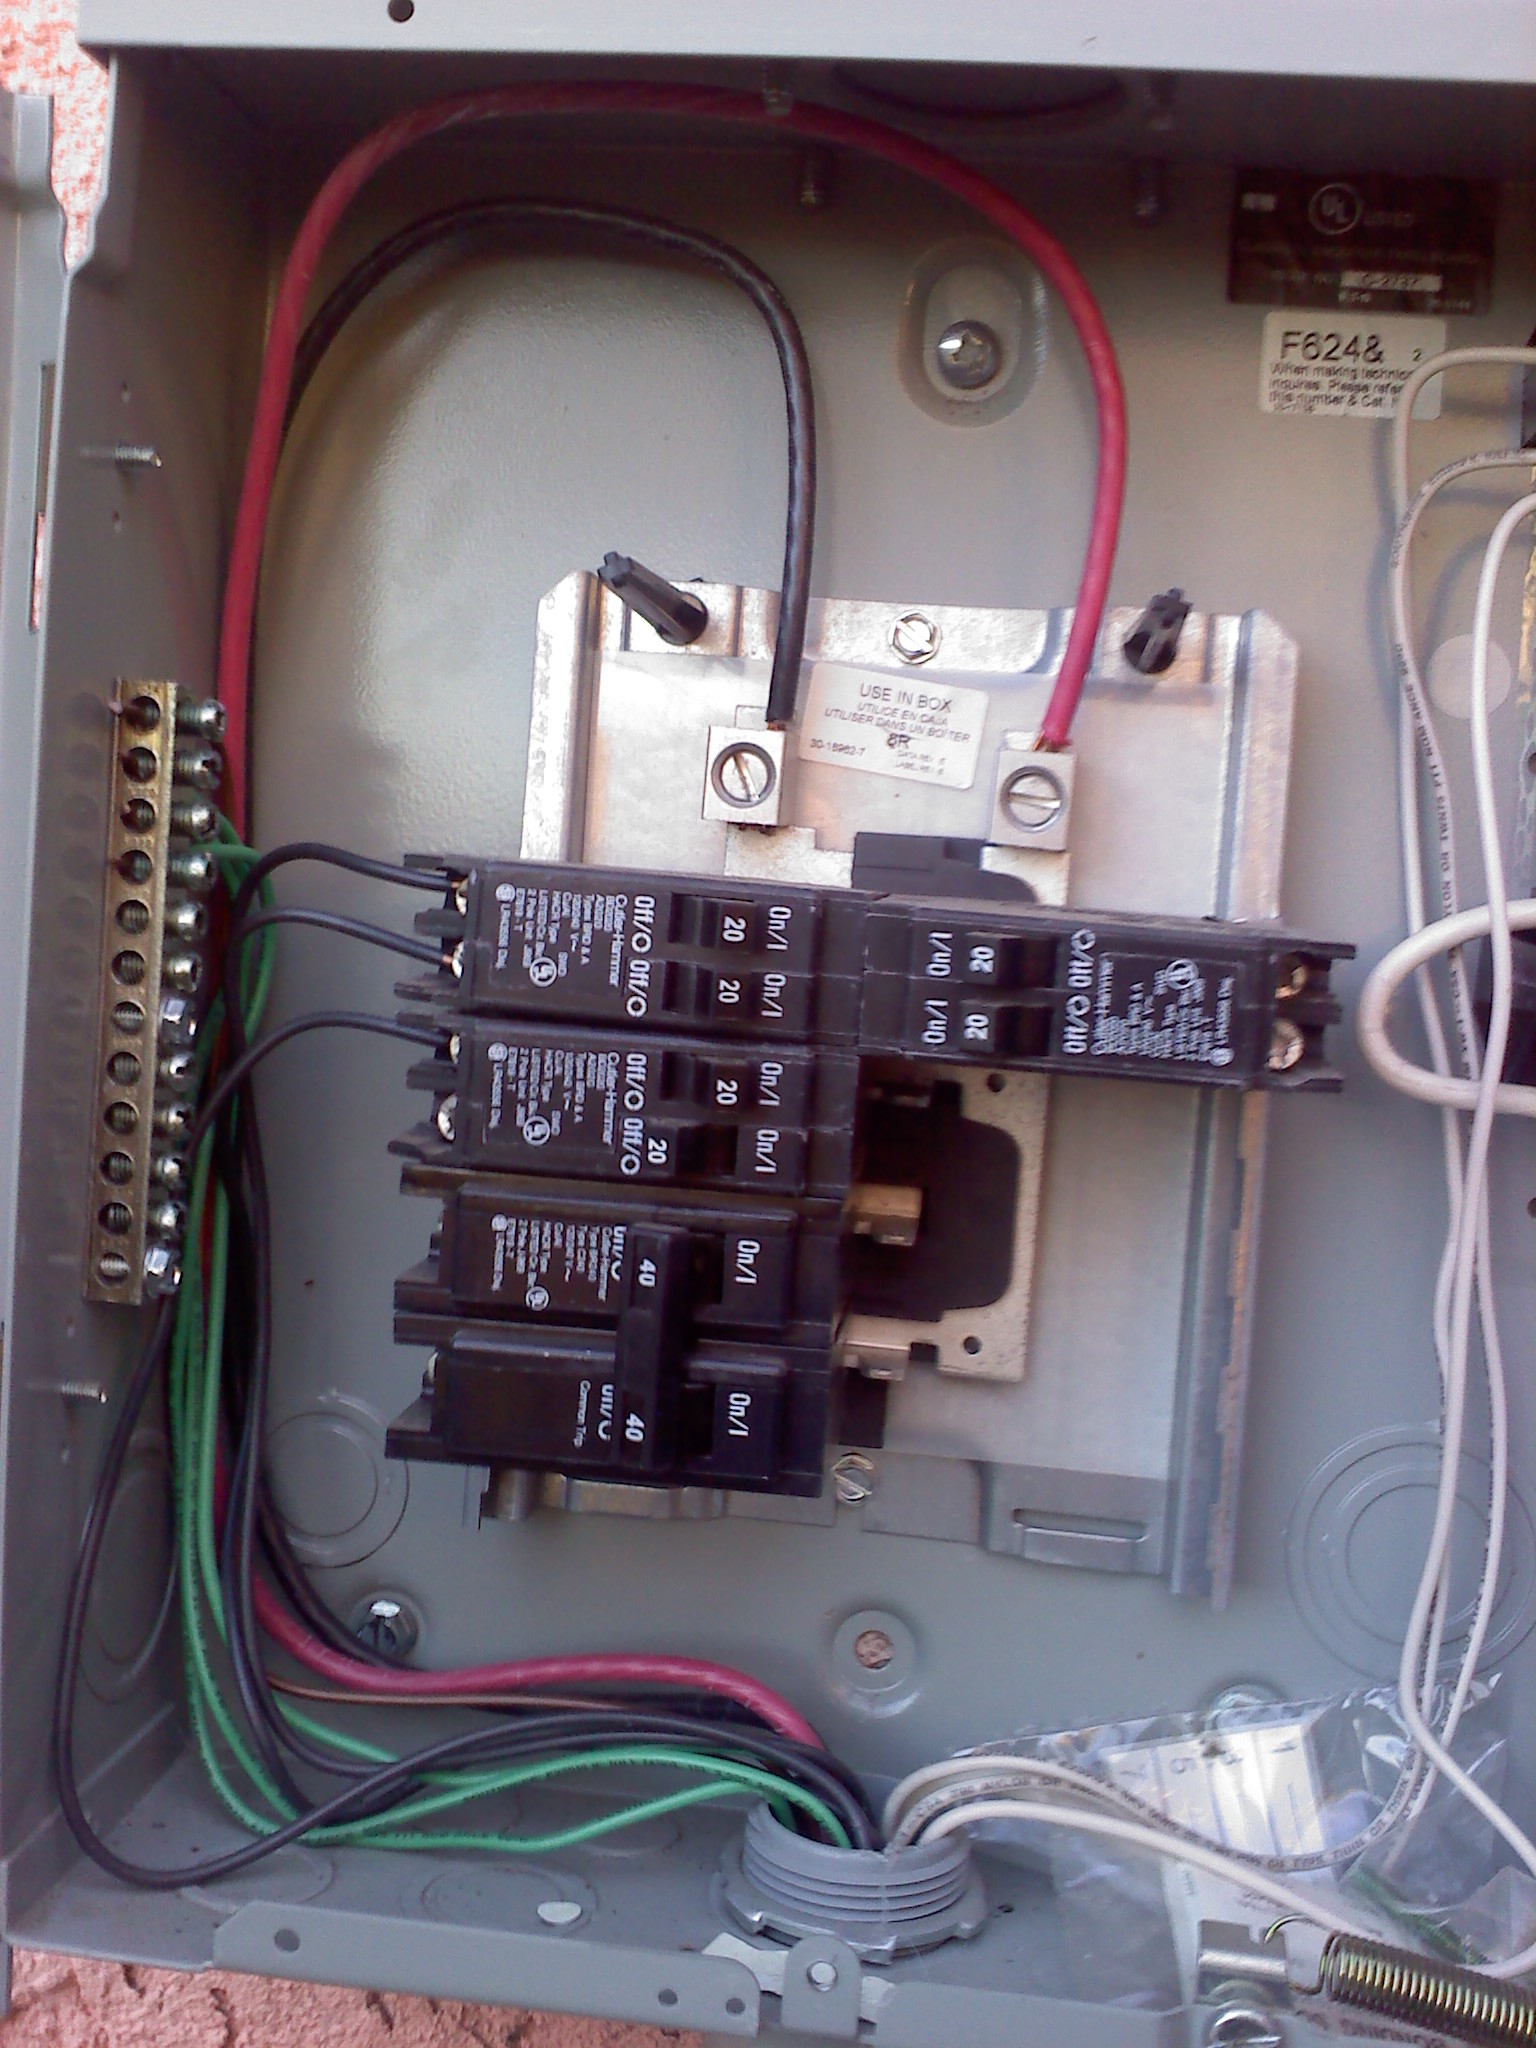 Wiring Electrical Sub Panels And Panels | Wiring Diagram - Electrical Sub Panel Wiring Diagram